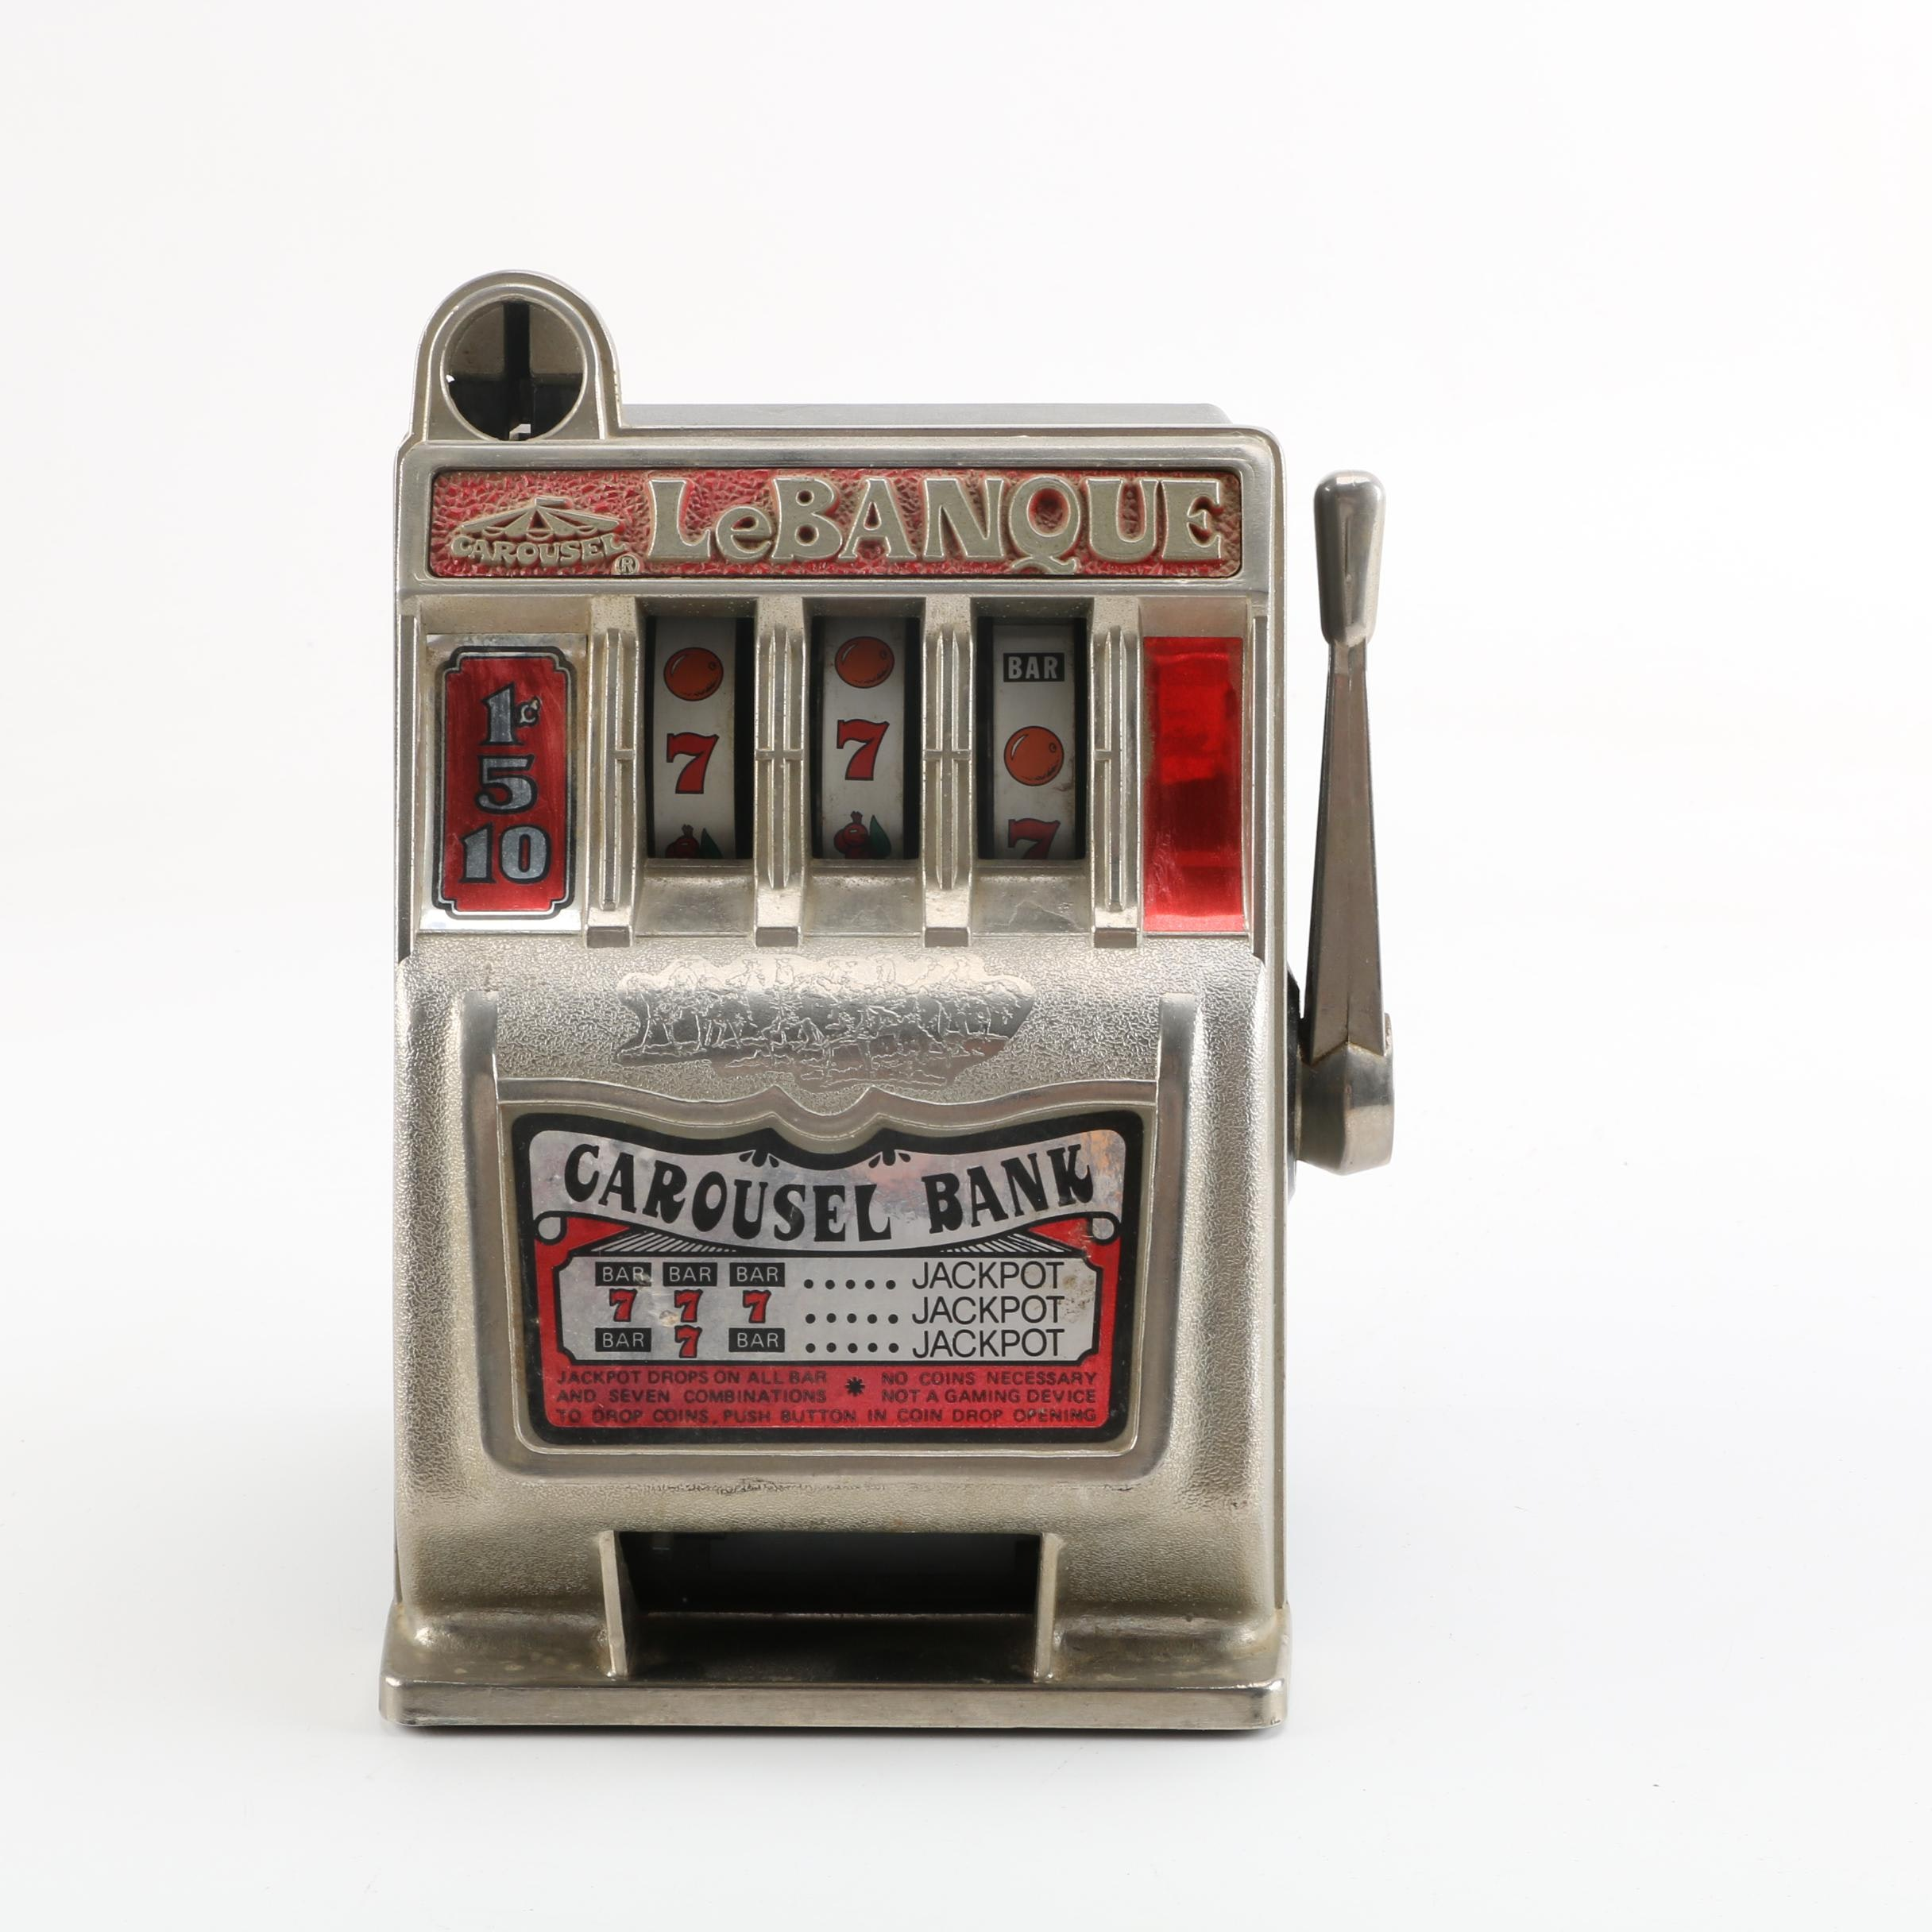 Lebanque slot machine proctor and gamble surf